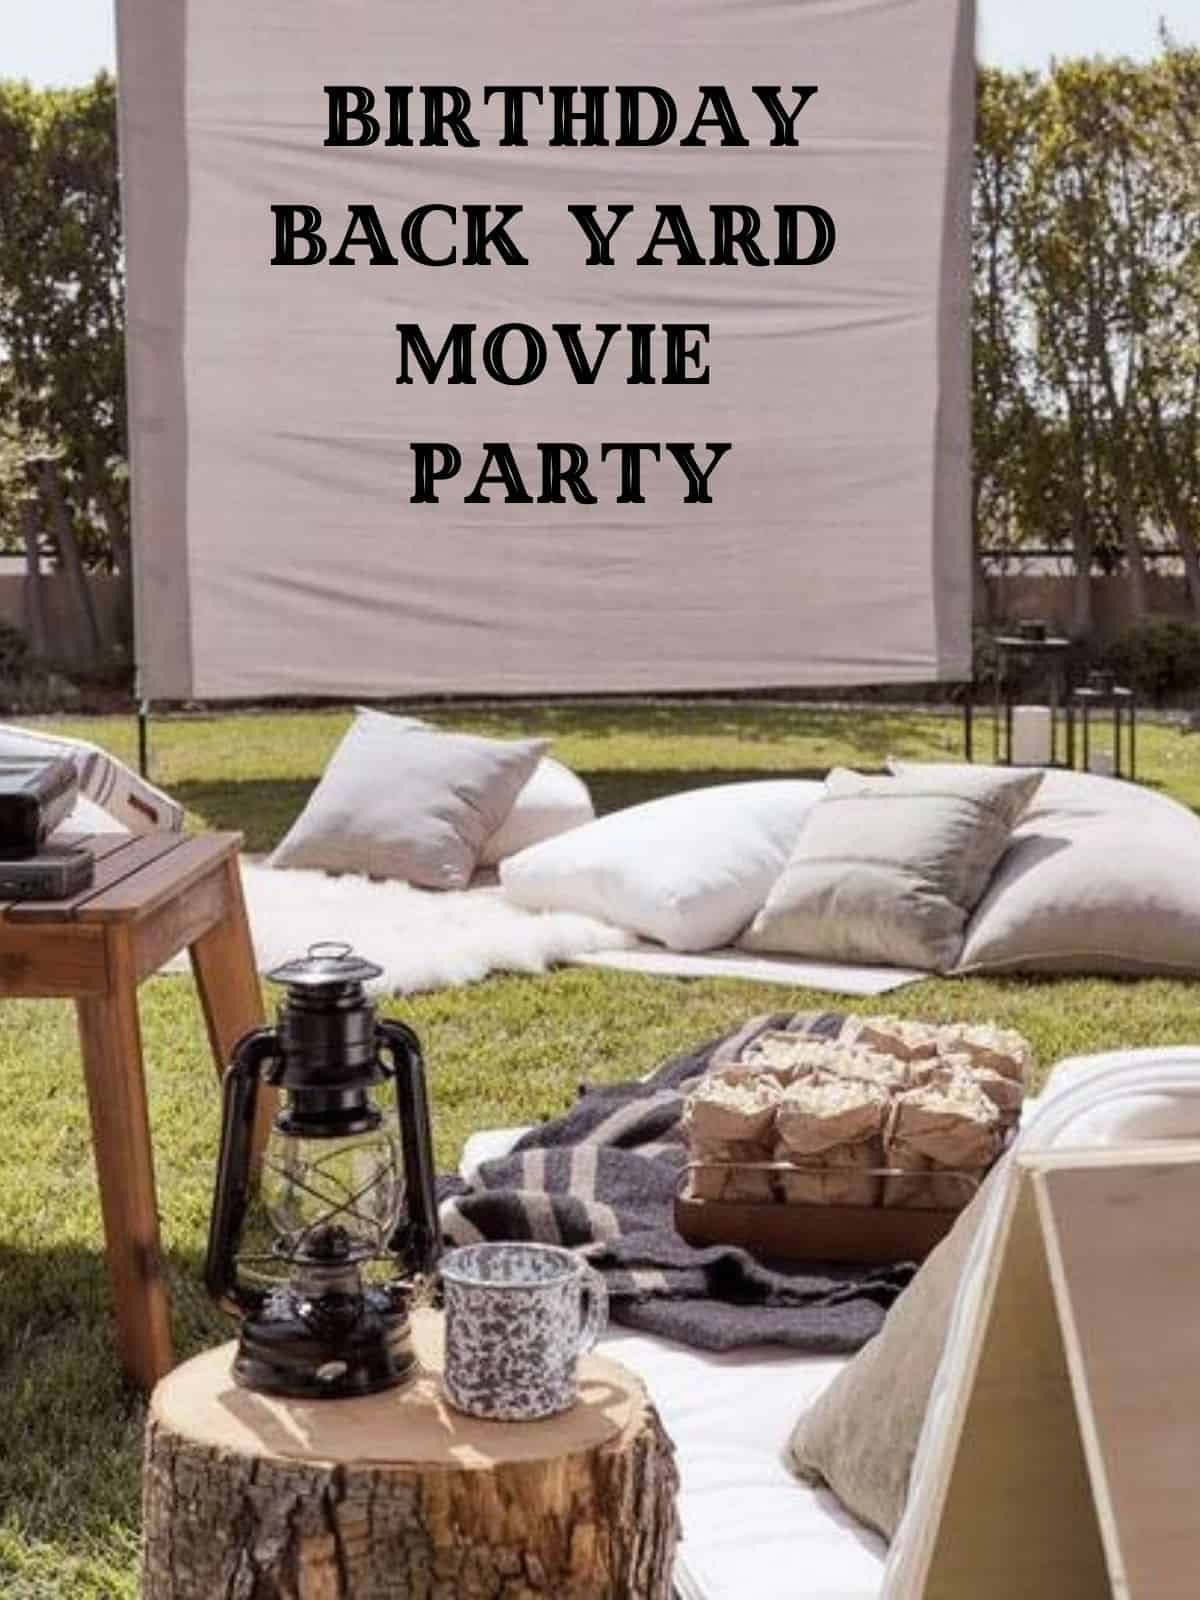 movie screen and pillows for adult birthday movie party in the yard